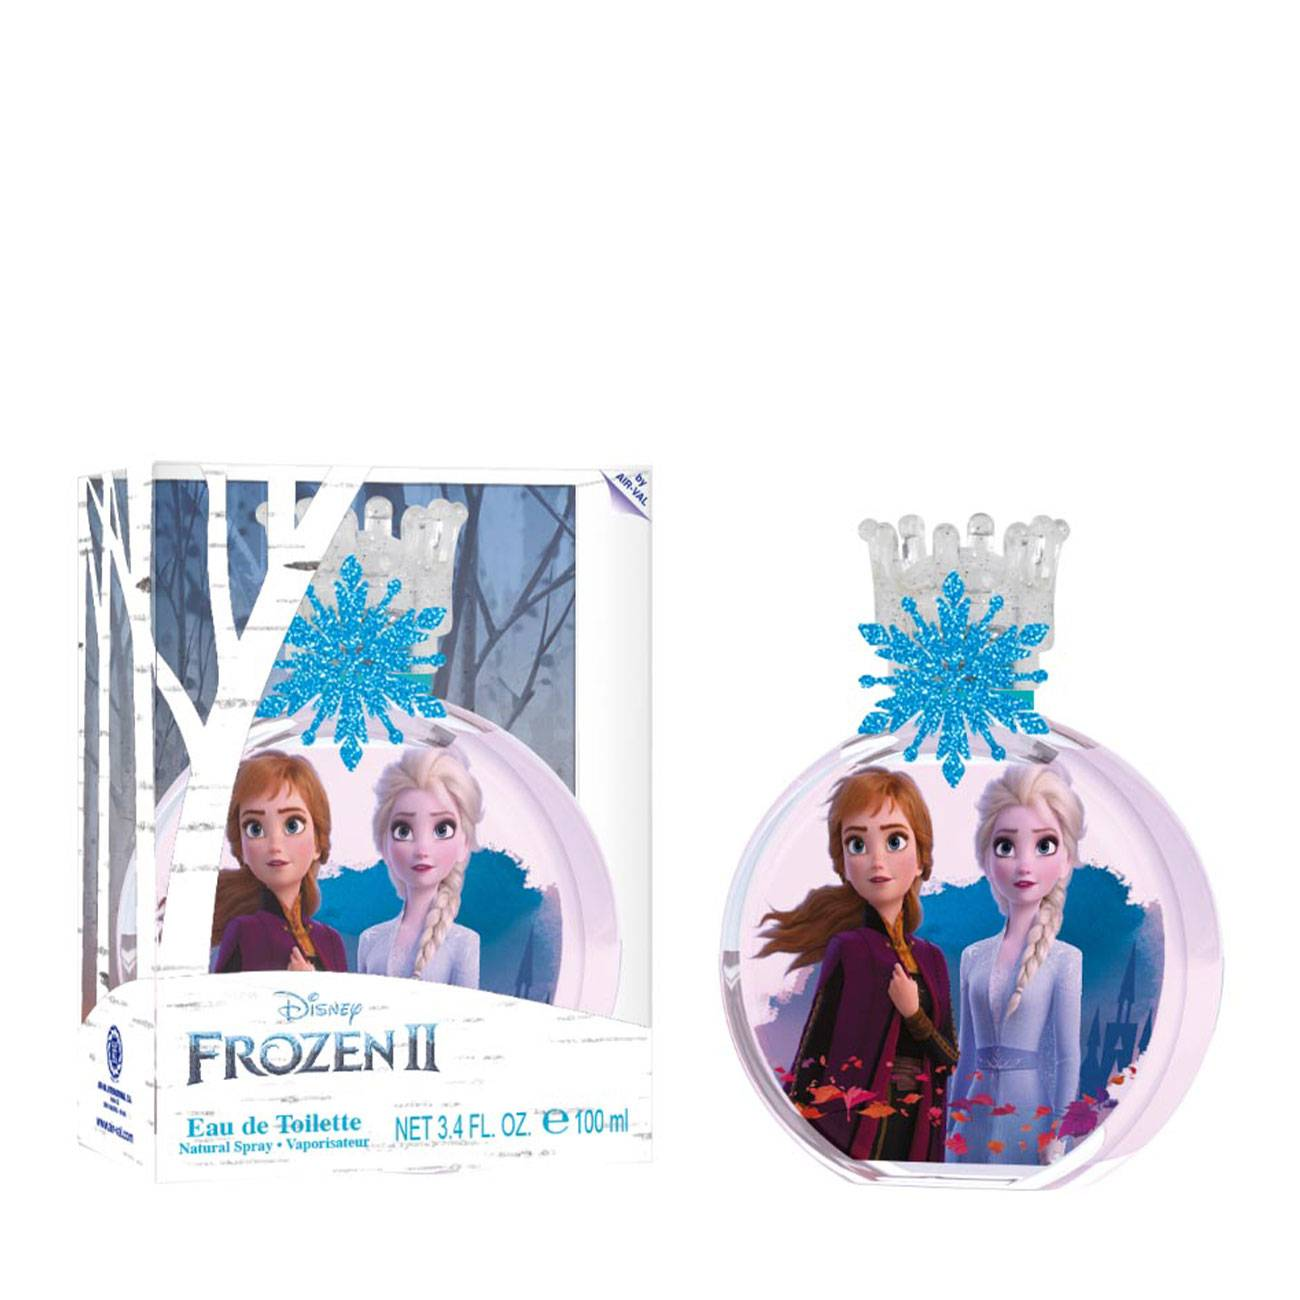 FROZEN II SET imagine